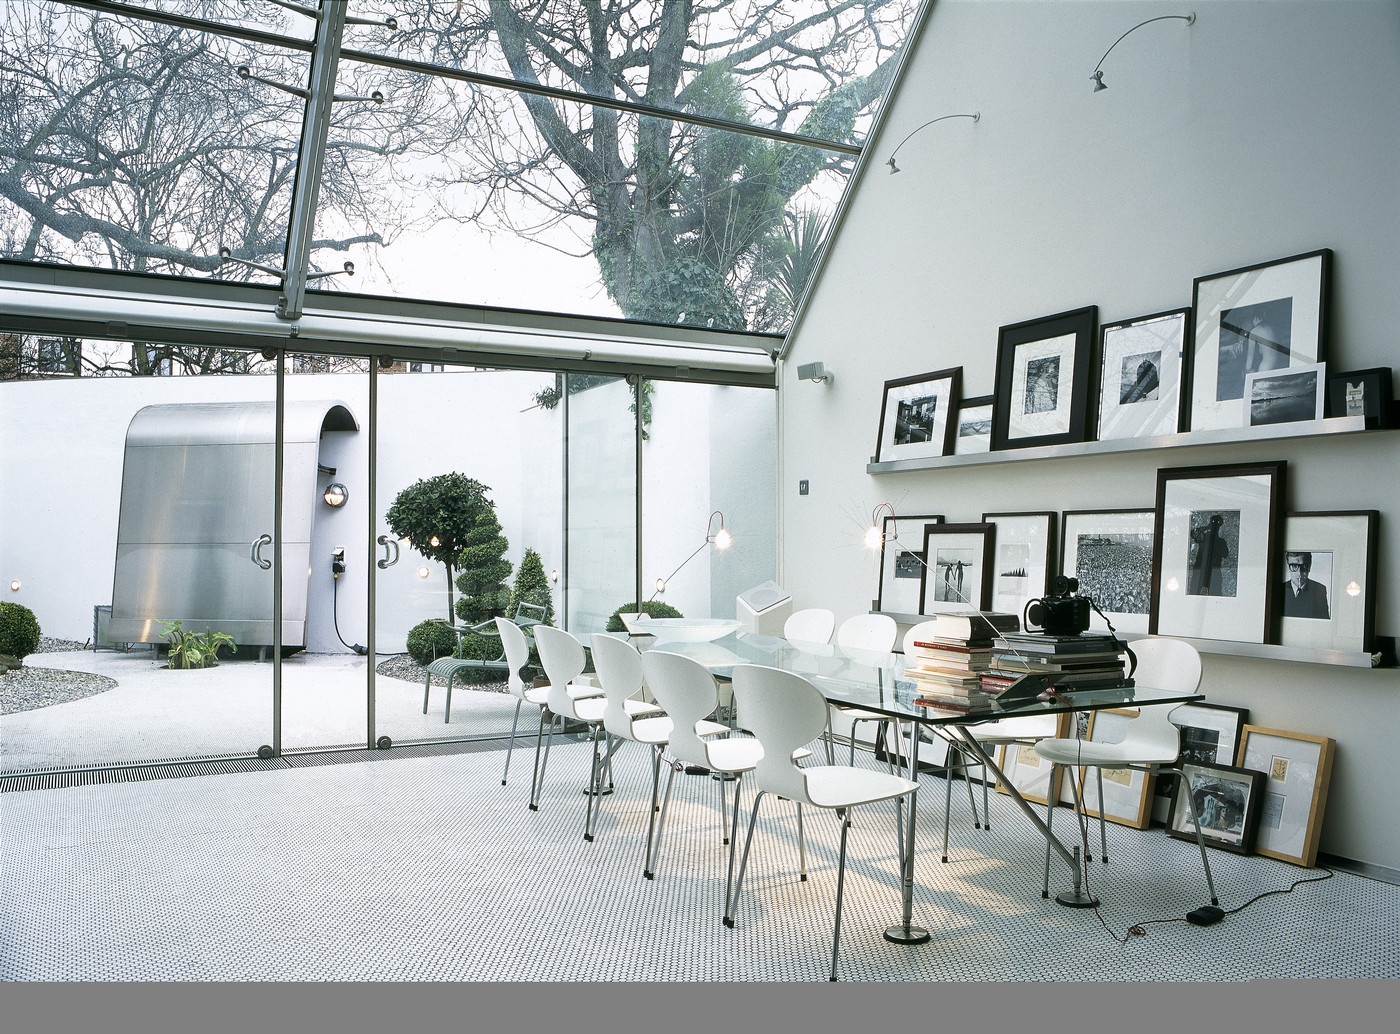 Sloping roof photos design ideas remodel and decor lonny - Table et chaise transparente ...